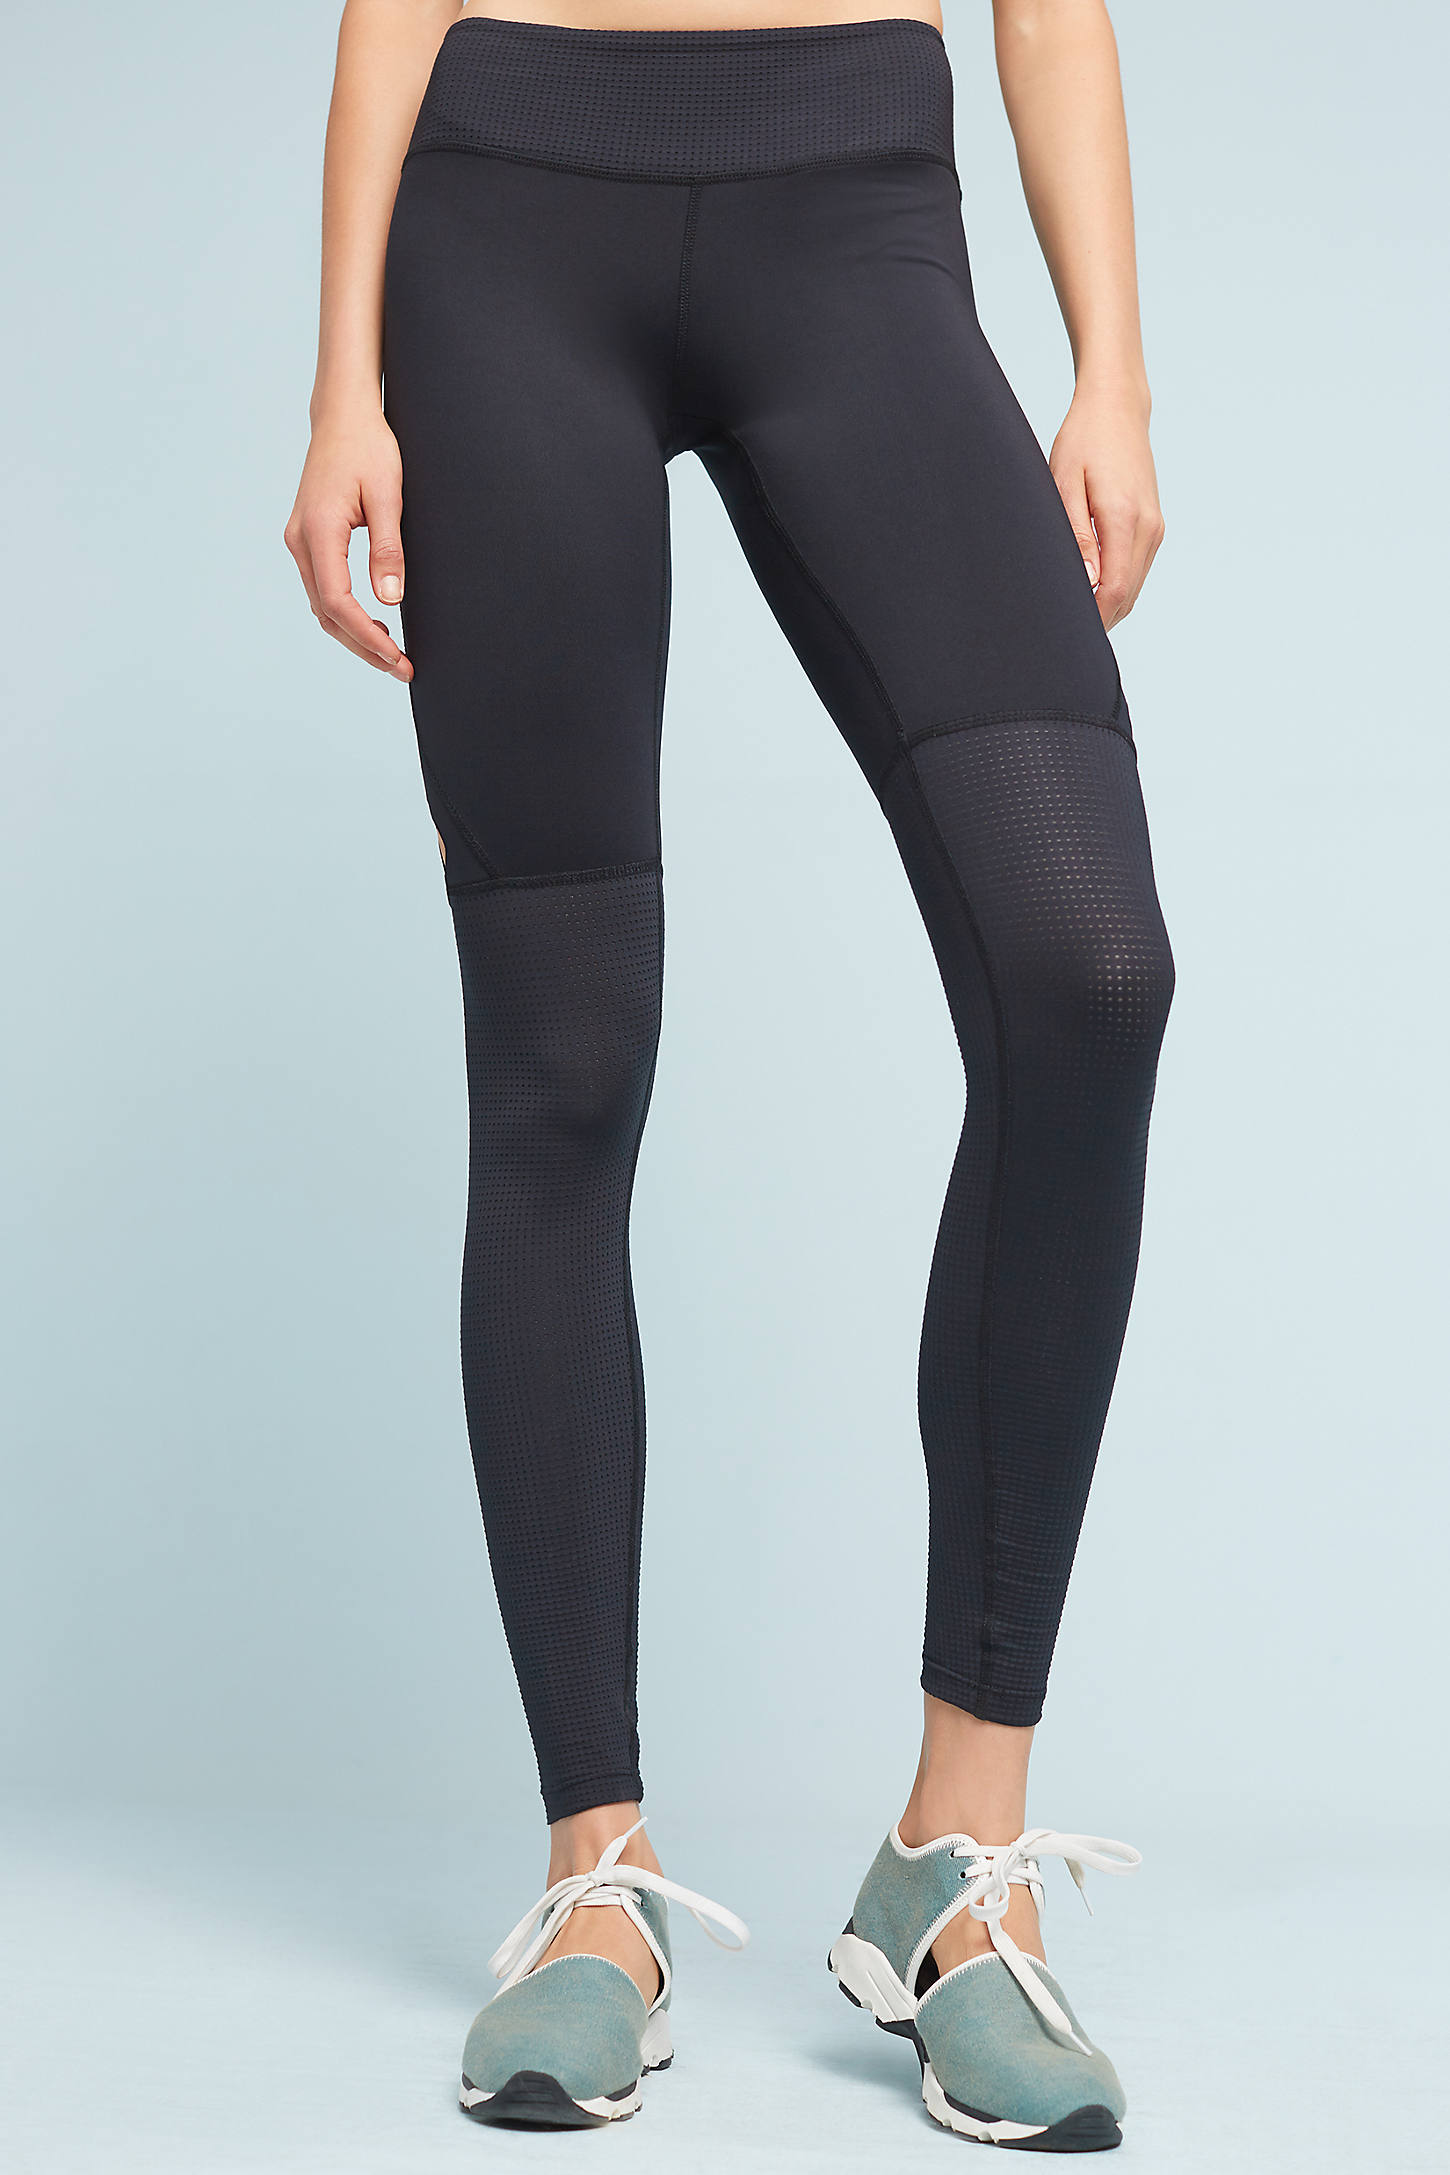 Star-Crossed Cutout Leggings